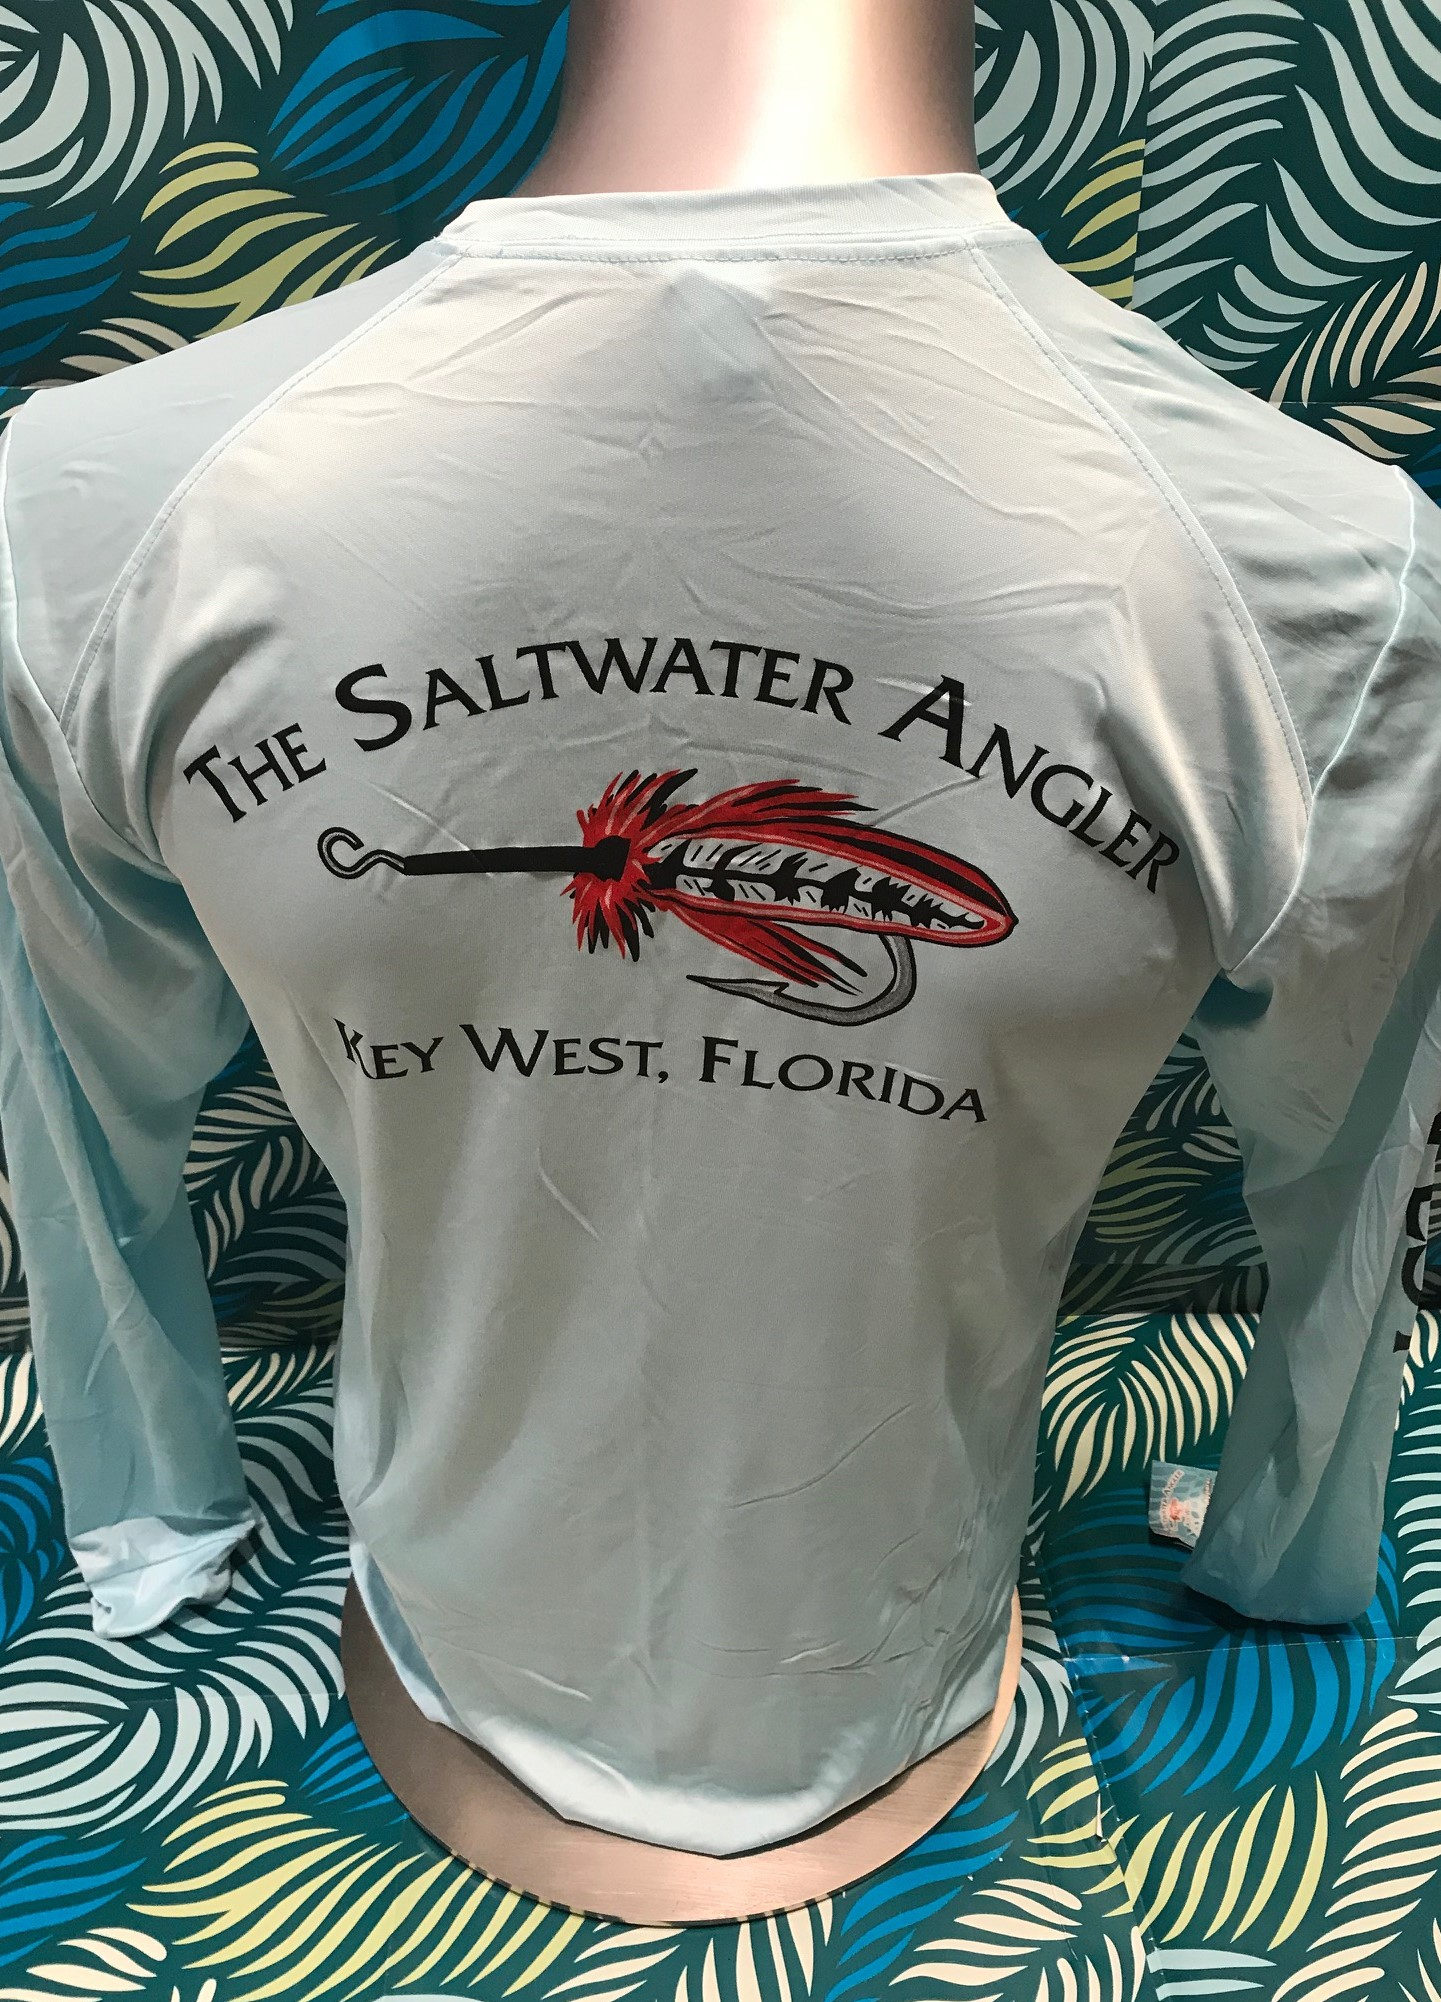 Saltwater Angler Performance Sun Shirt